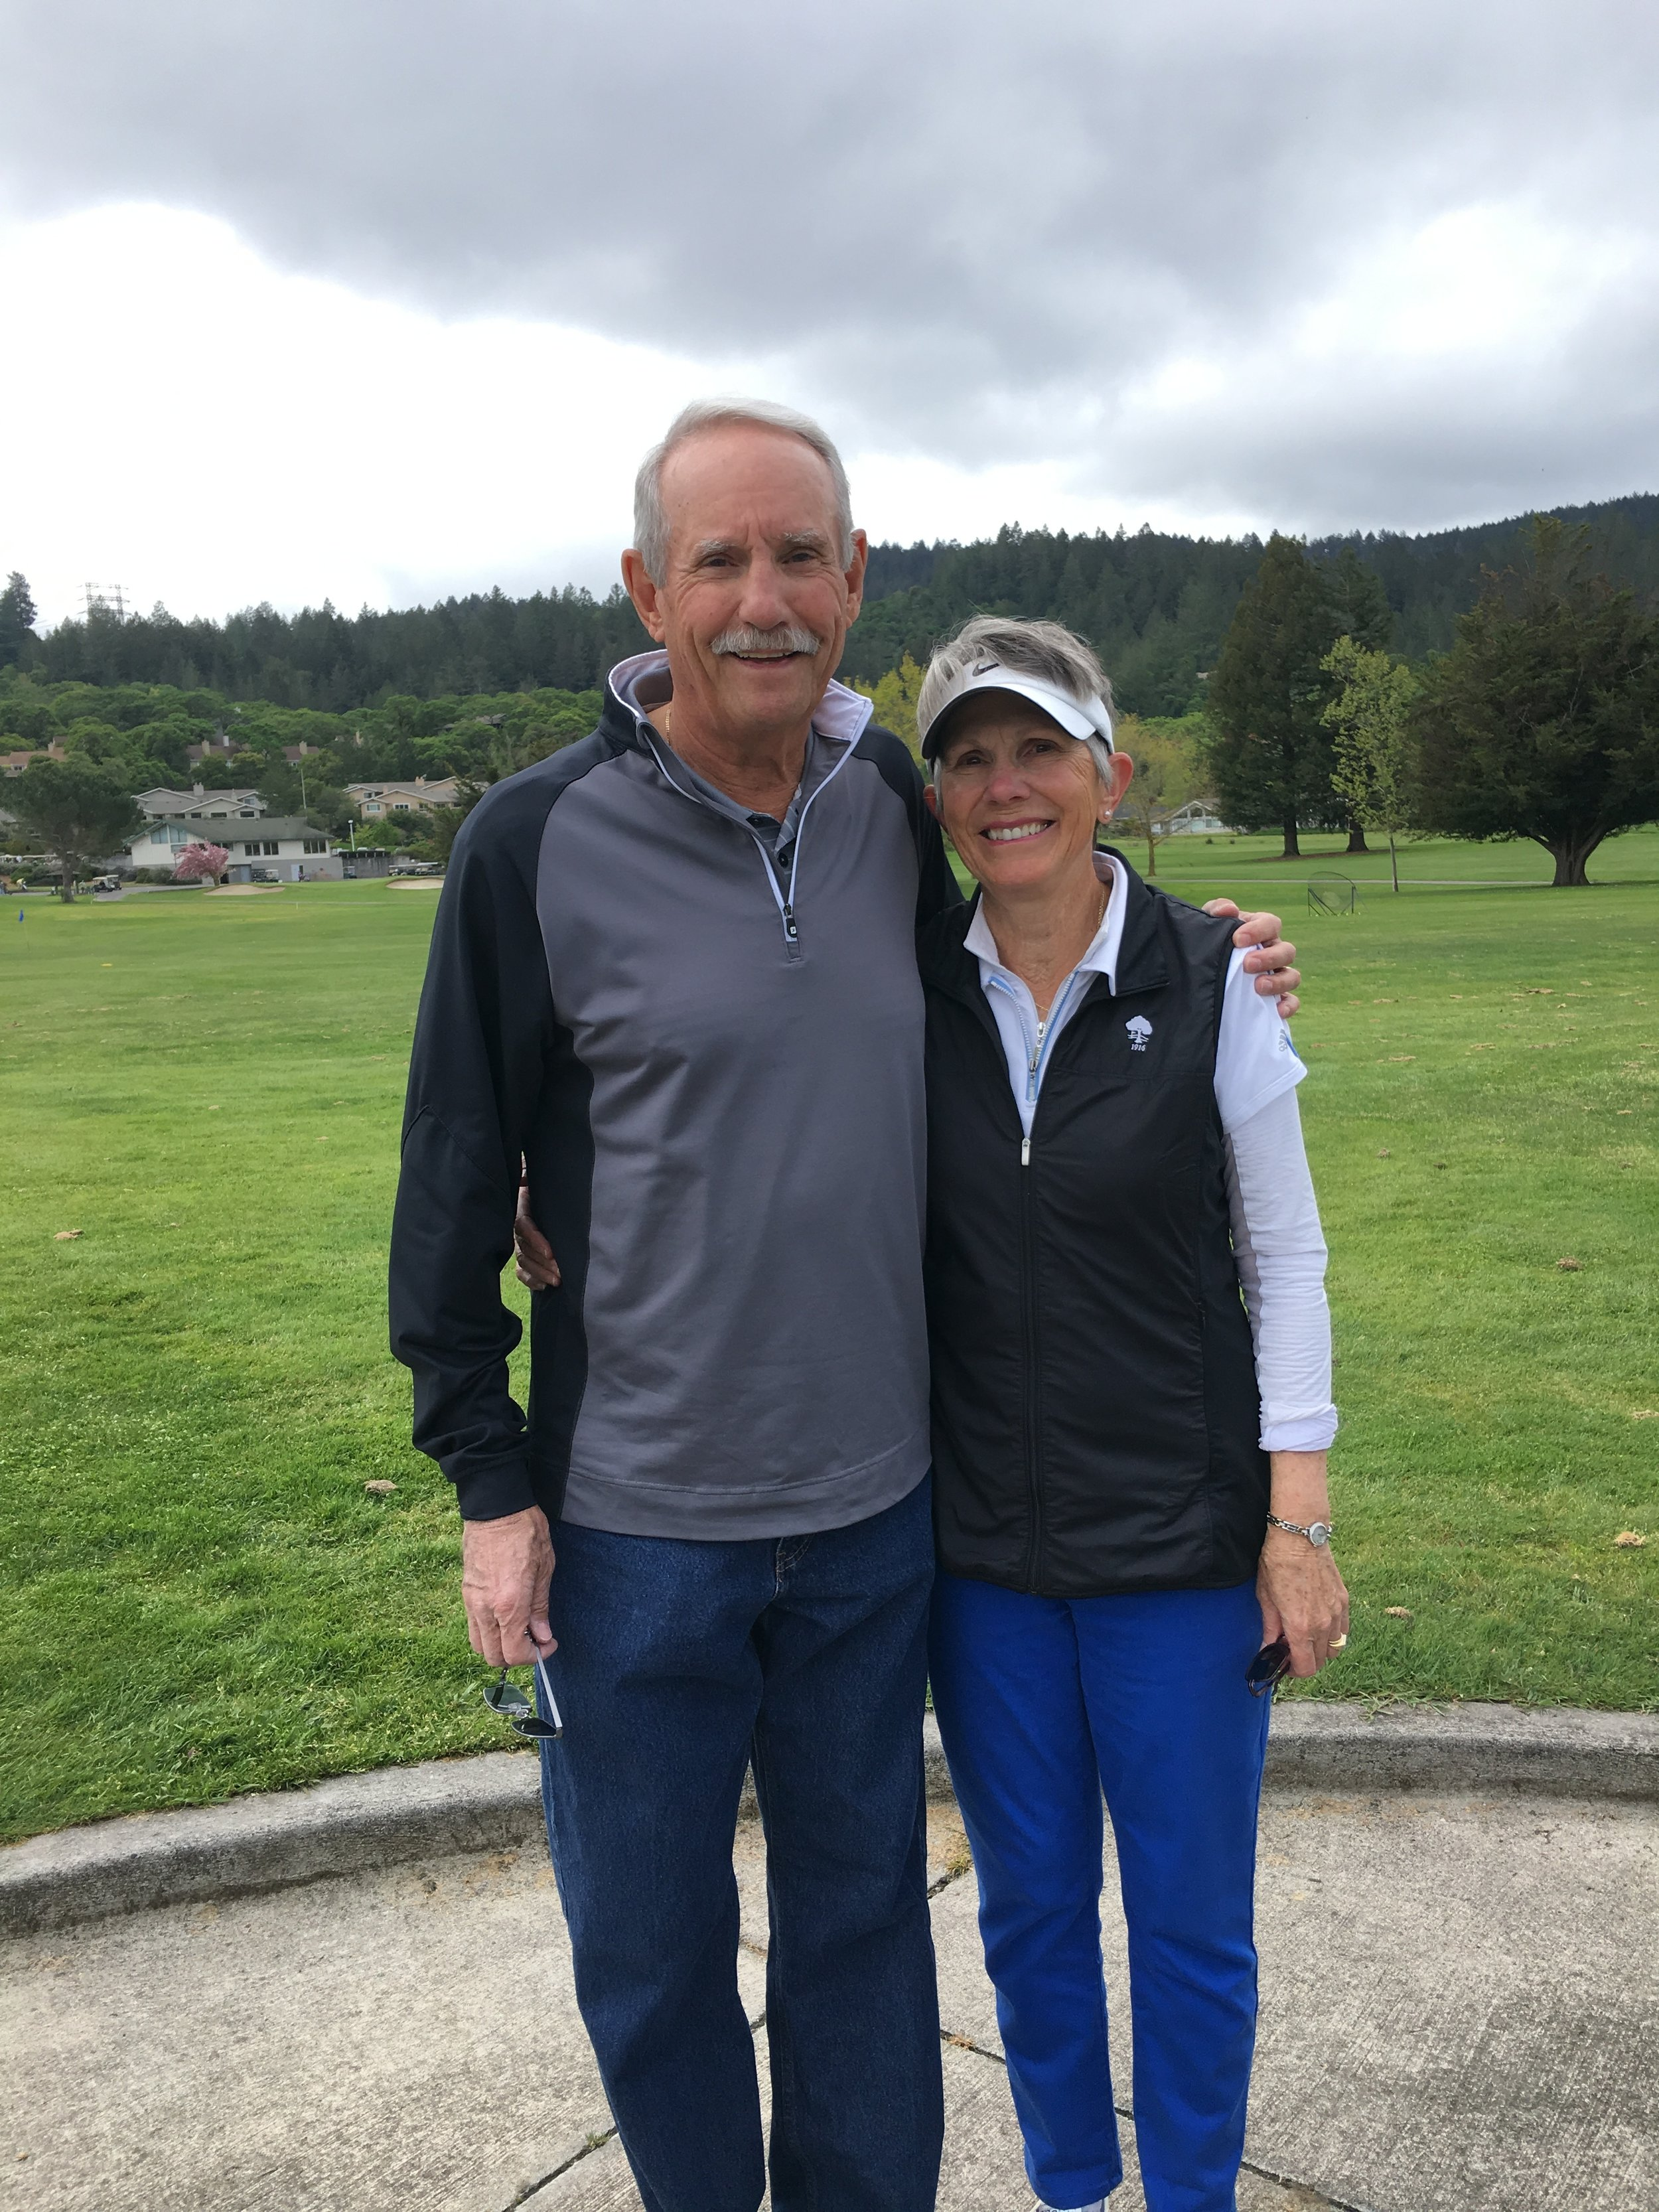 Pete Waller and Linda Paul, Assistant Coaches